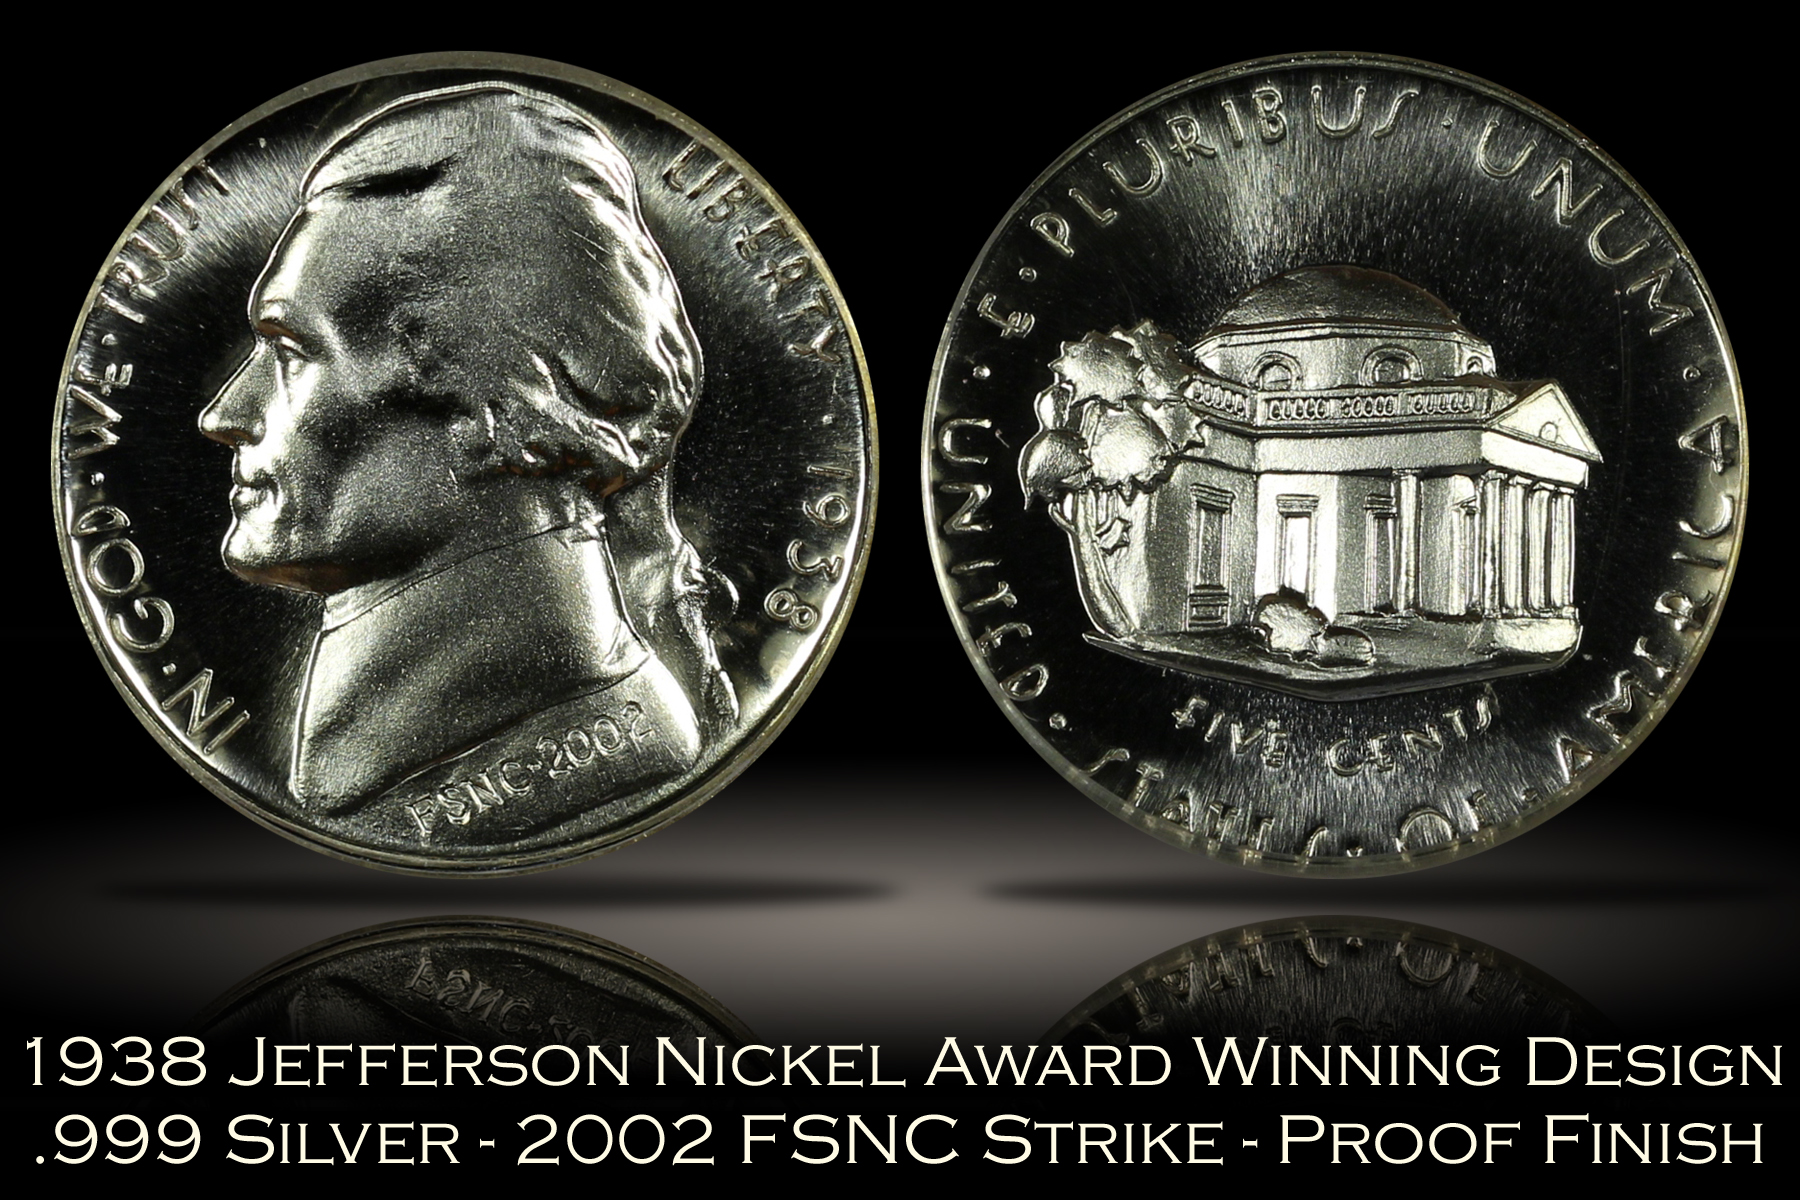 1938 Jefferson Nickel Award Winning Design FSNC 2002 Strike SEGS .999 Silver Set #40